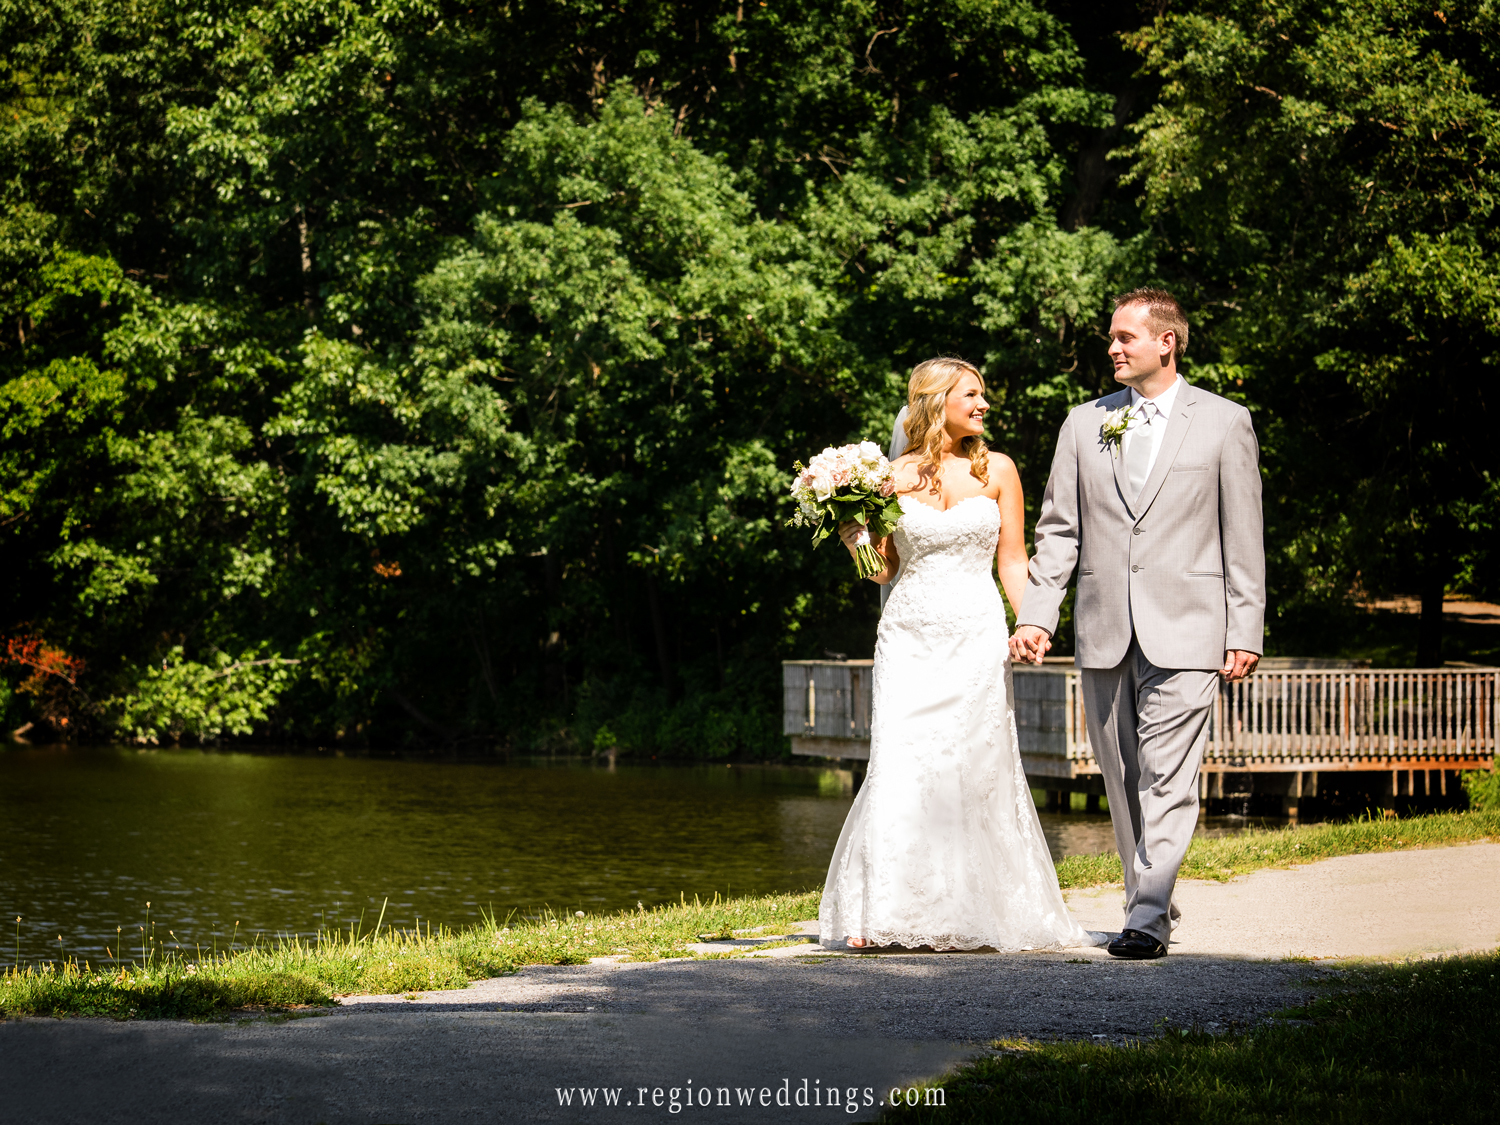 The bride and groom take a romantic stroll along Lemon Lake in Crown Point, Indiana.